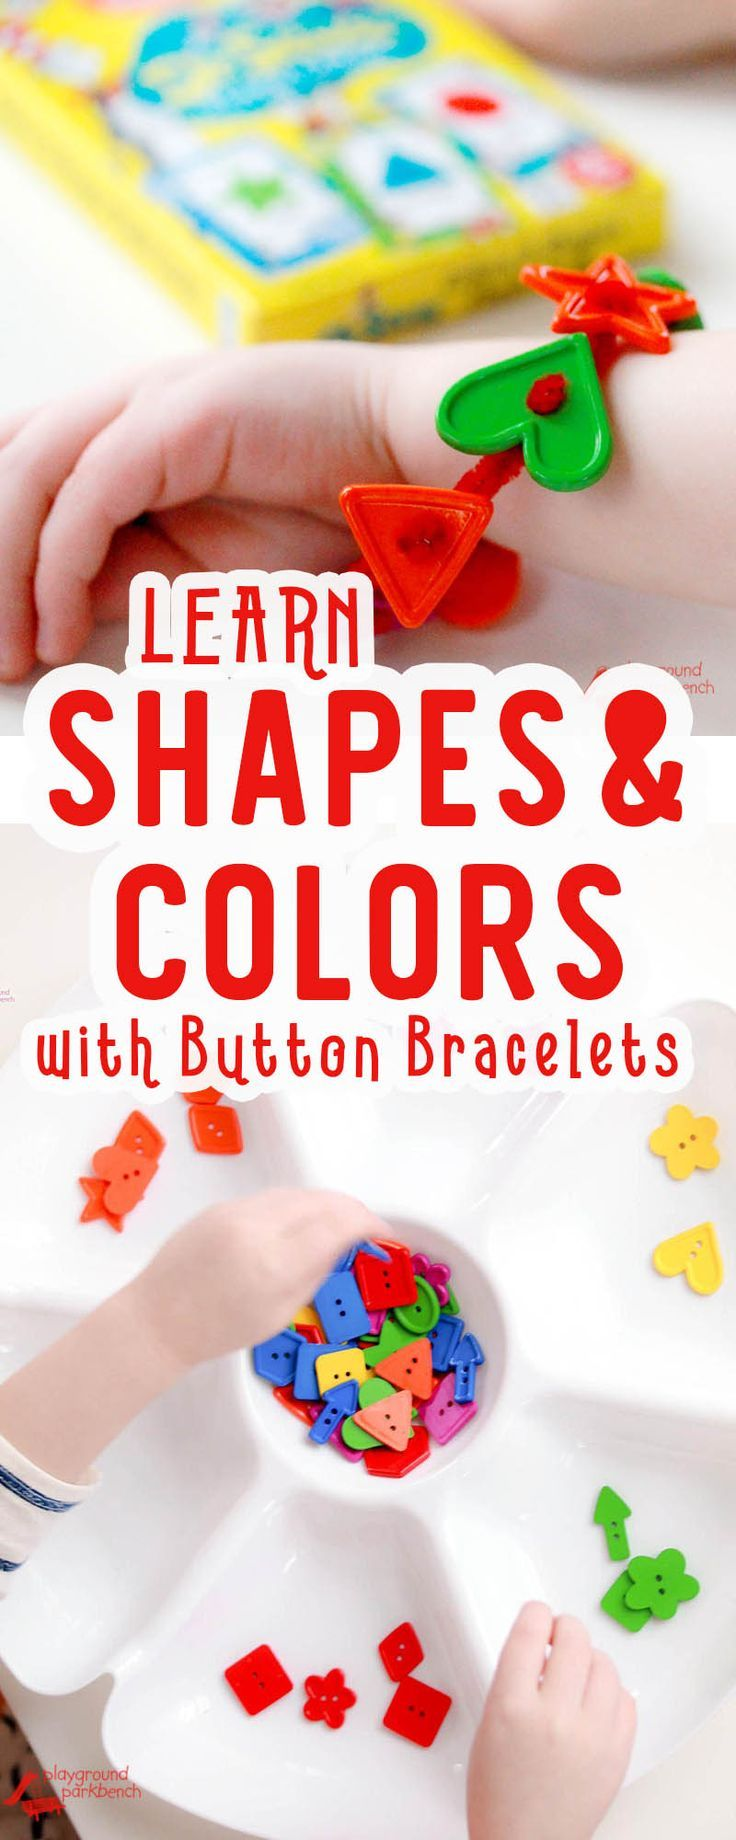 Encourage your preschoolers recognition of shapes and colors through this simple game - and they can build their own button bracelet in the process. | STEM | STEAM Kids | Kids Activities | Crafts for Kids | Shapes | Colors | Preschool | Early Learning | E